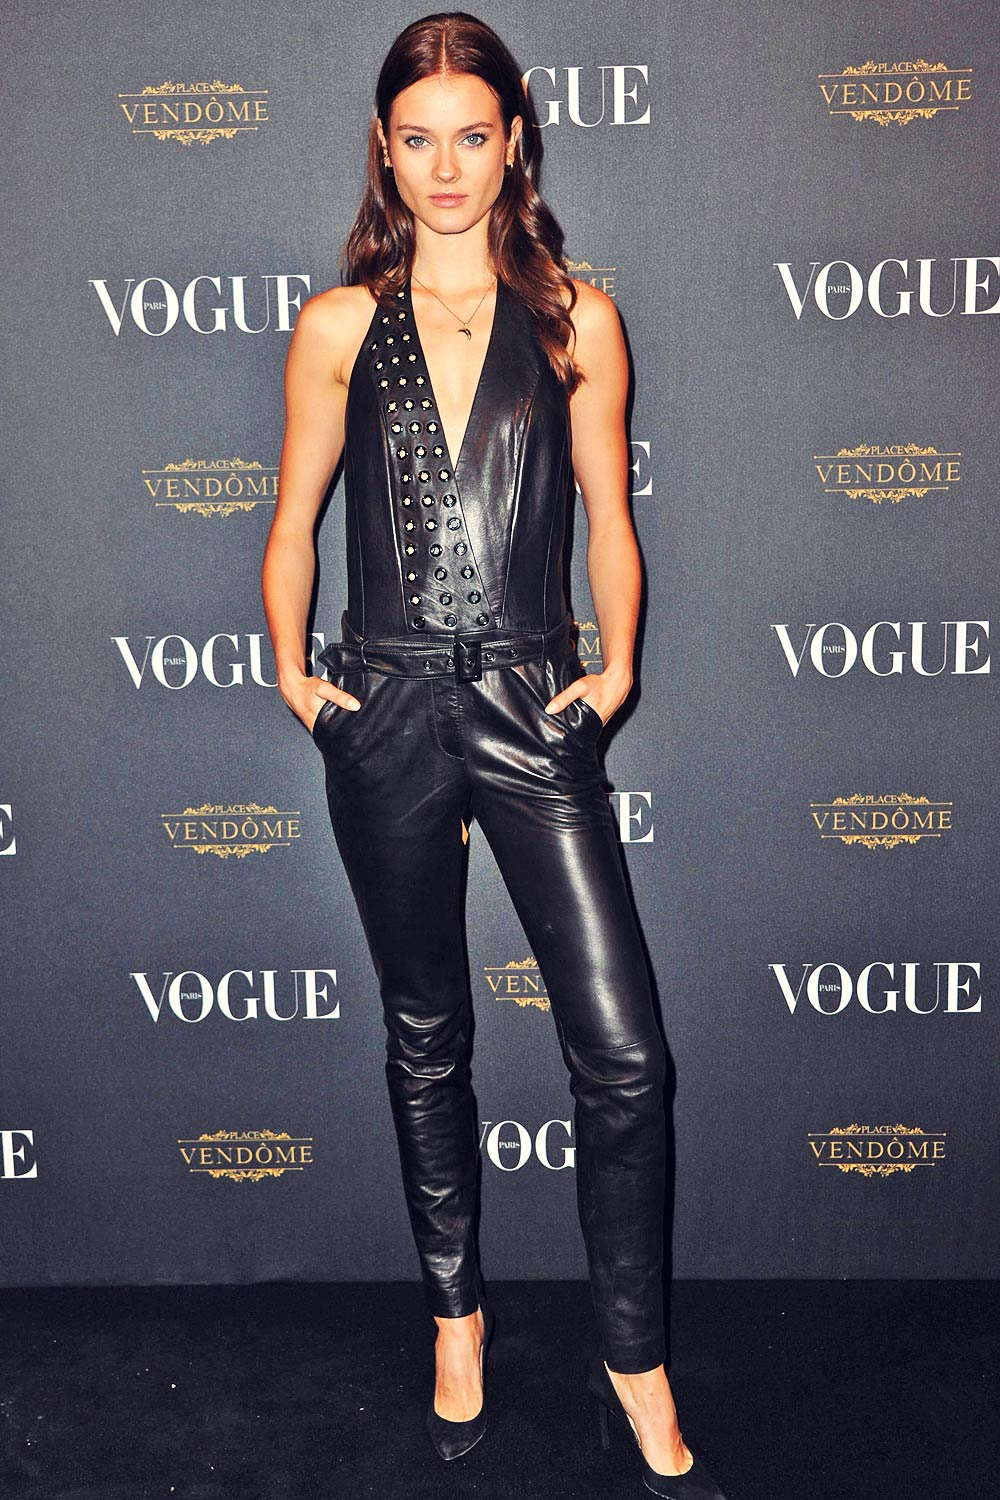 Monika Jagaciak Attends Vogue 95th Anniversary Party